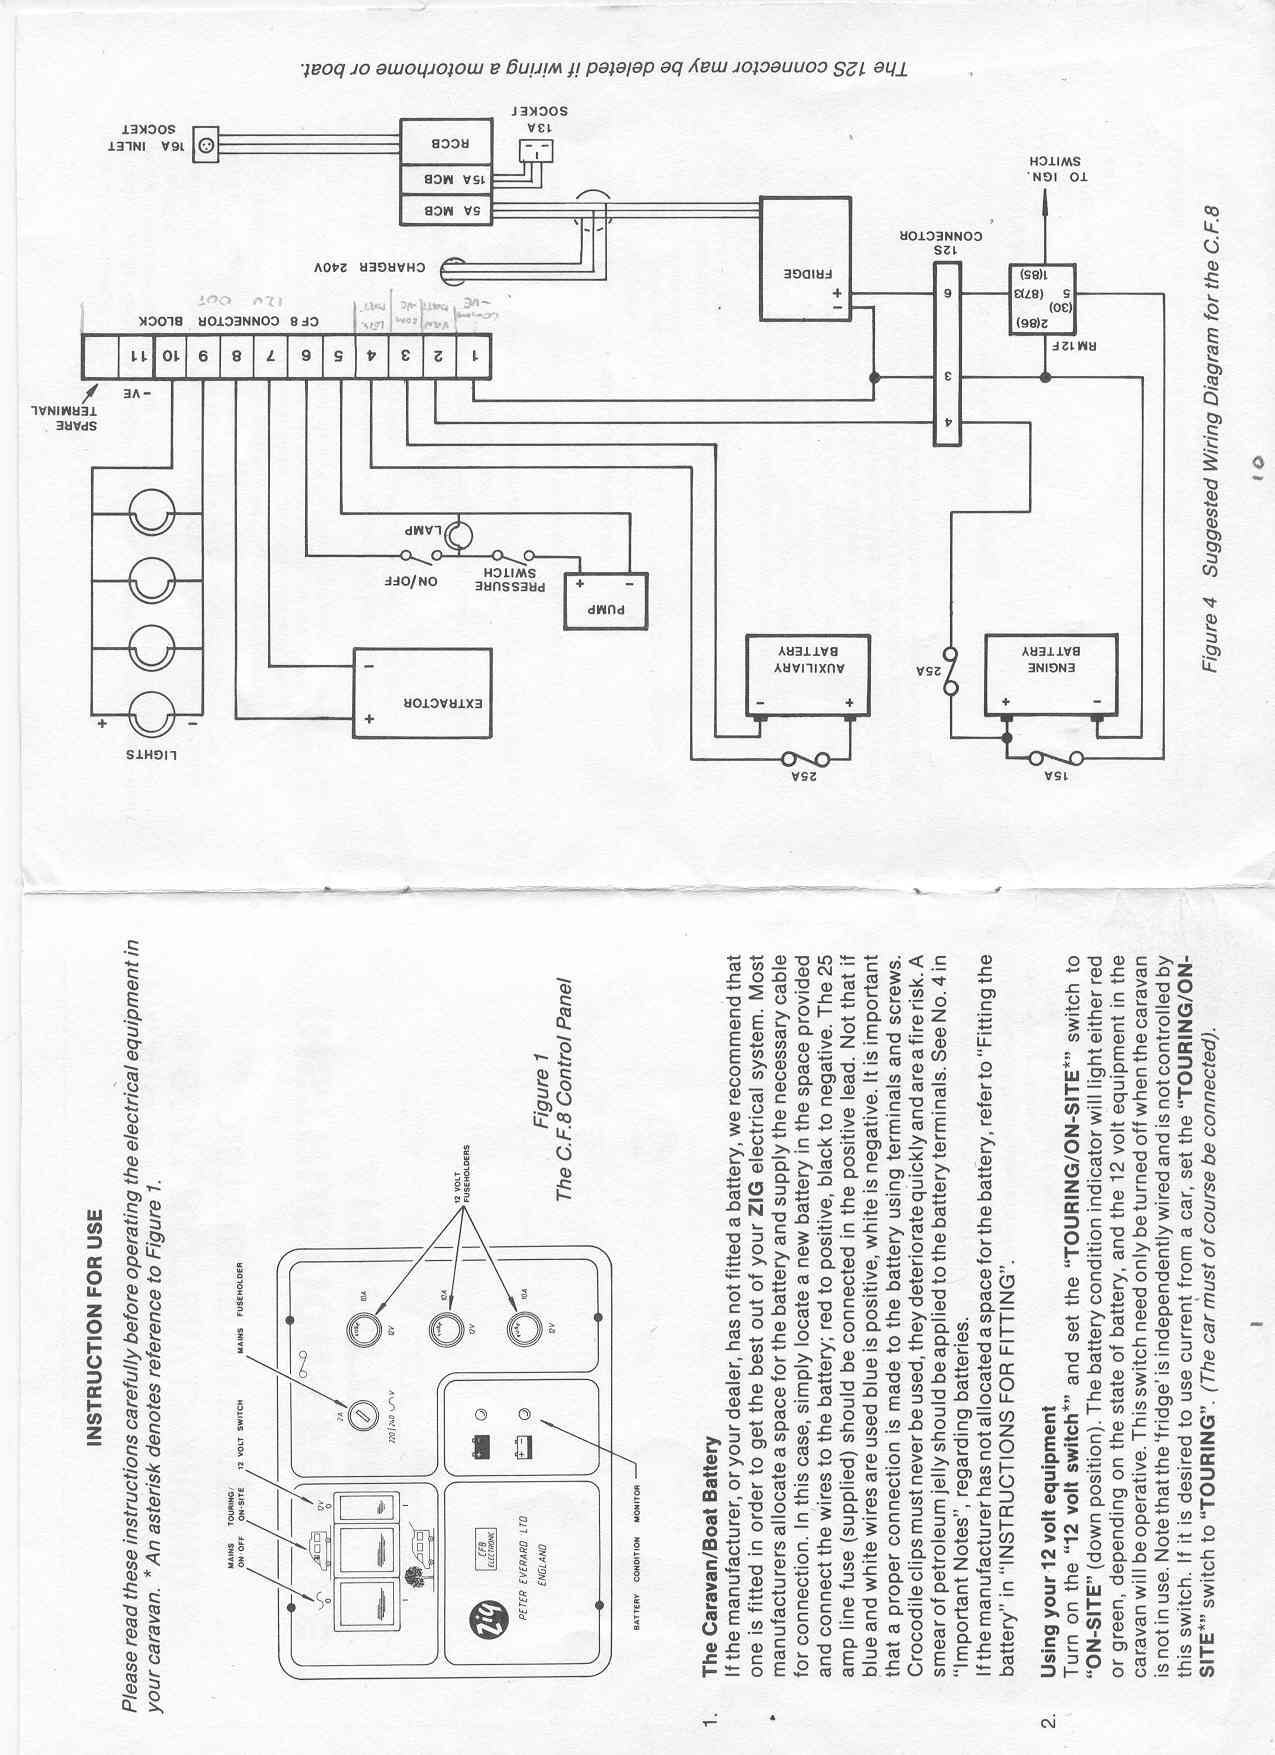 Fiat Peugeot Ducato Motorhome Wiring Diagram Page 1